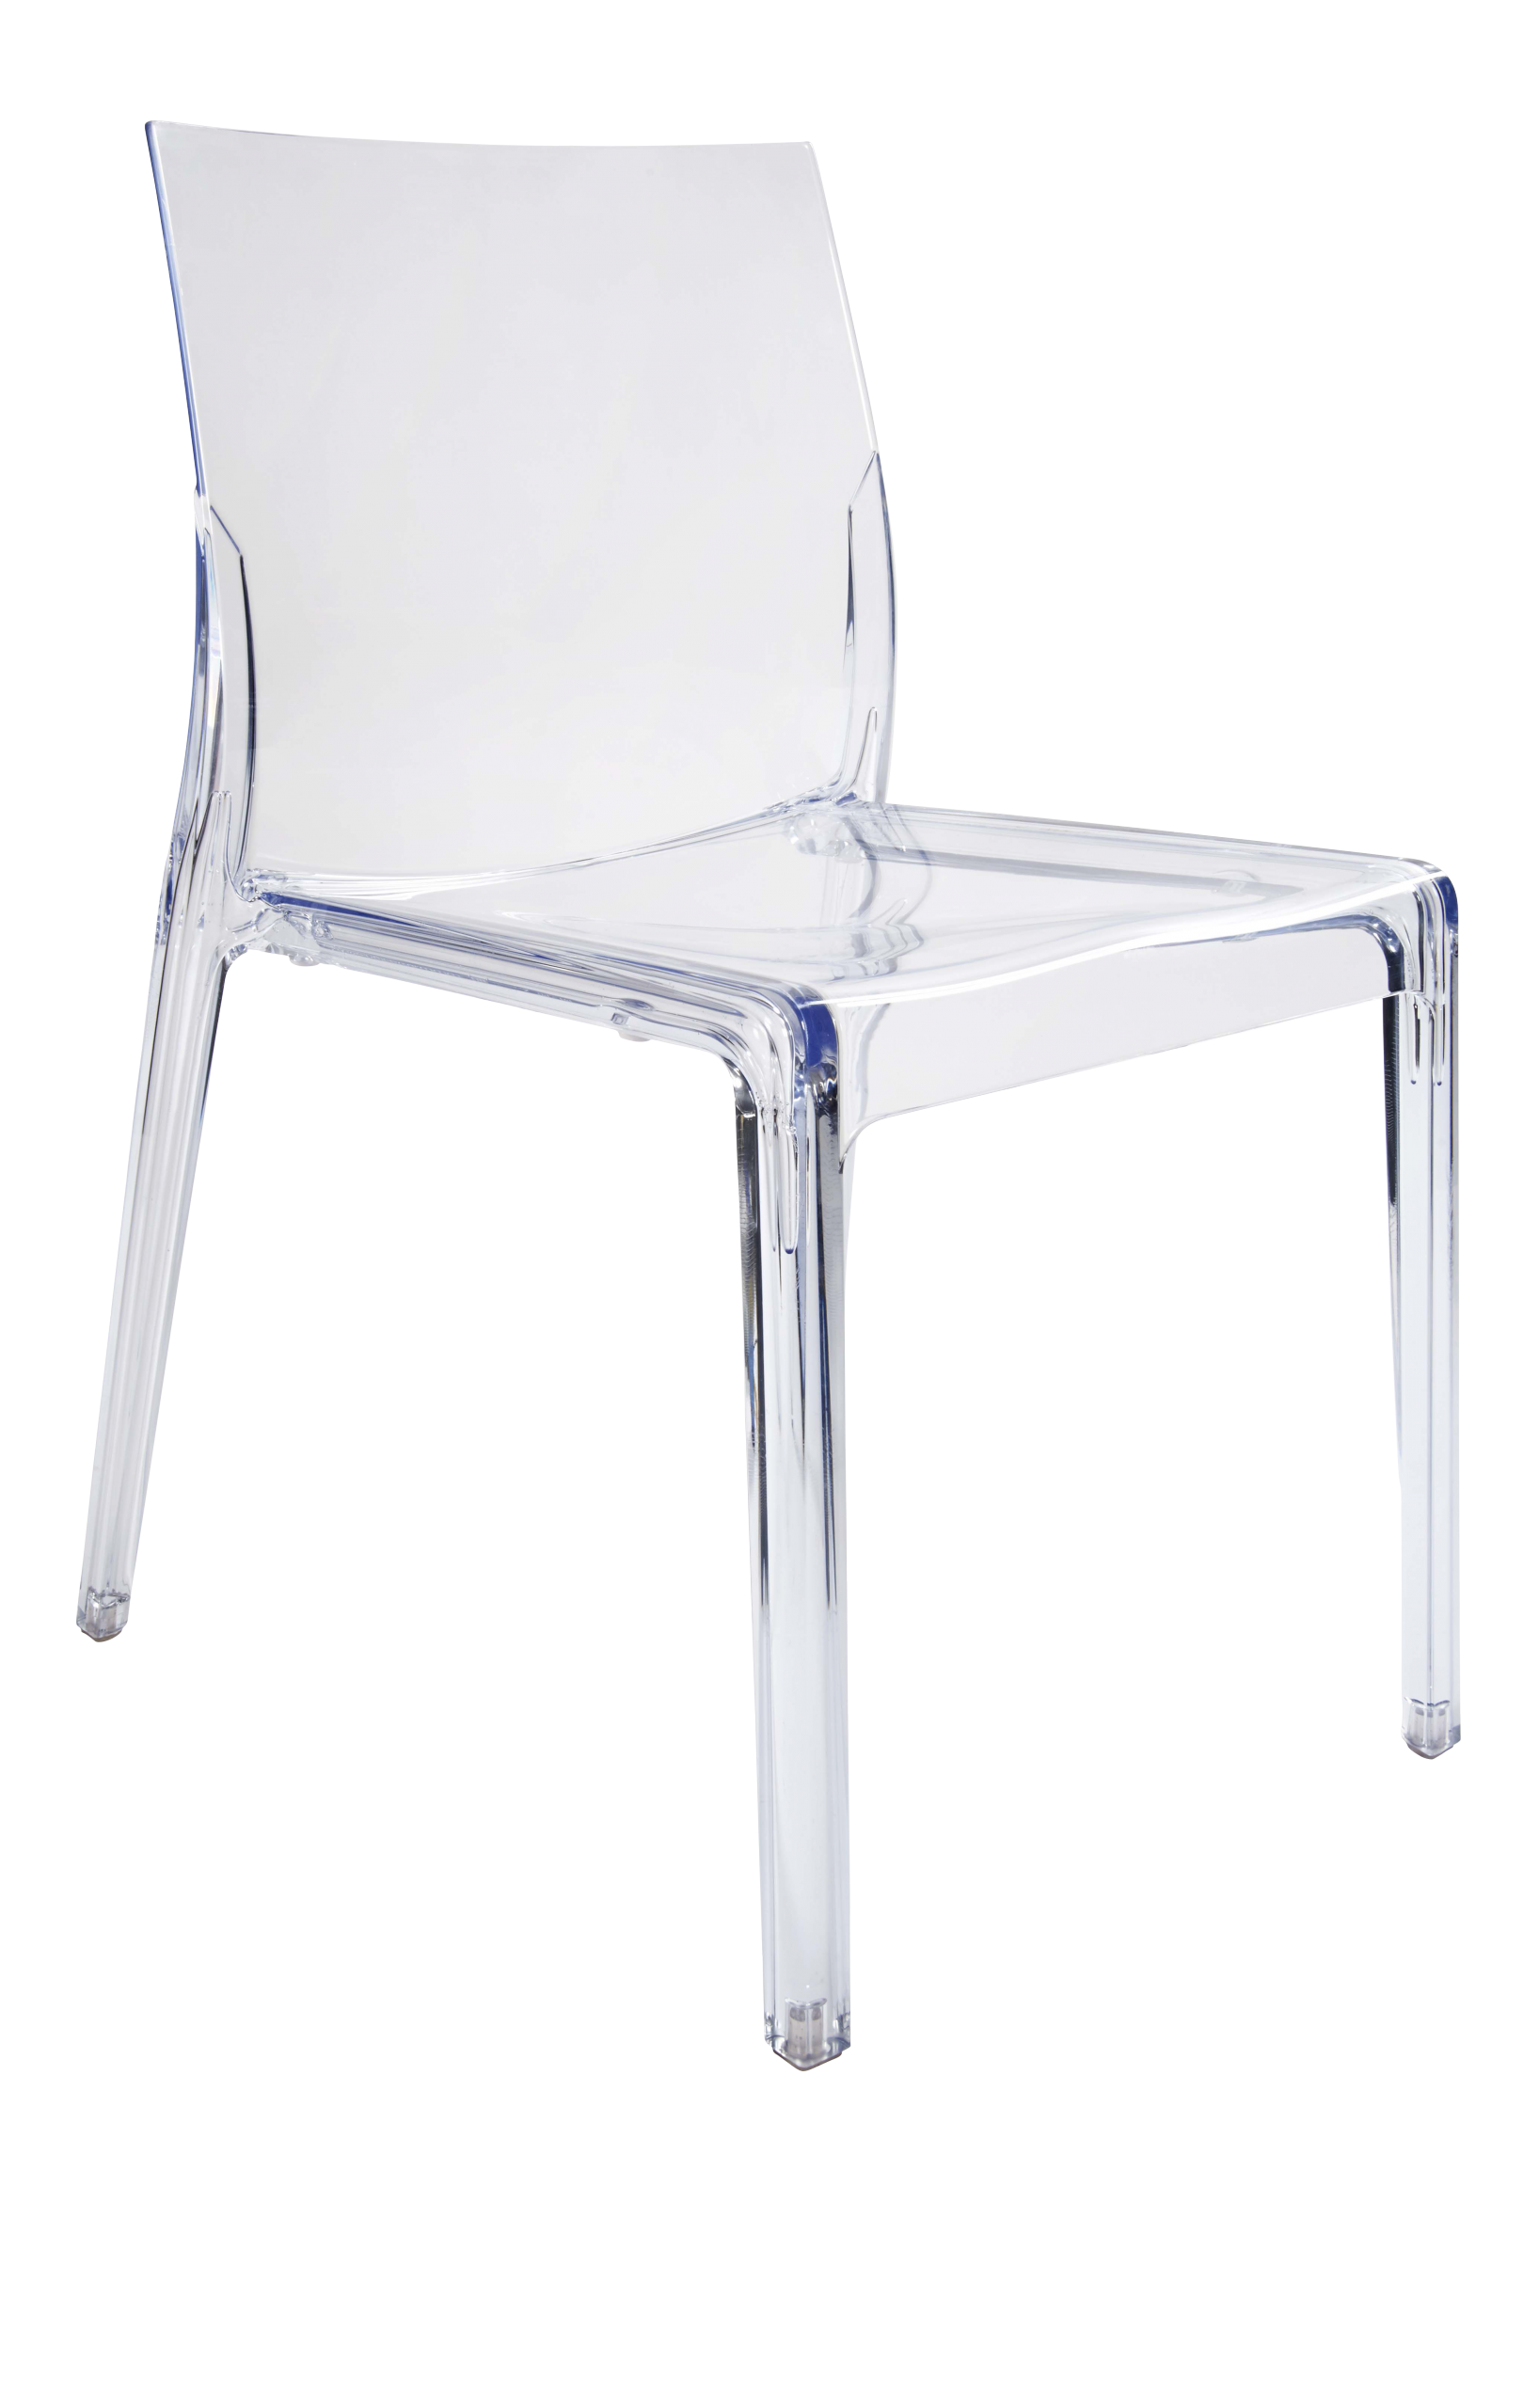 transparent polycarbonate chairs light gray chair mamamia stuhl for the home interior und habitats